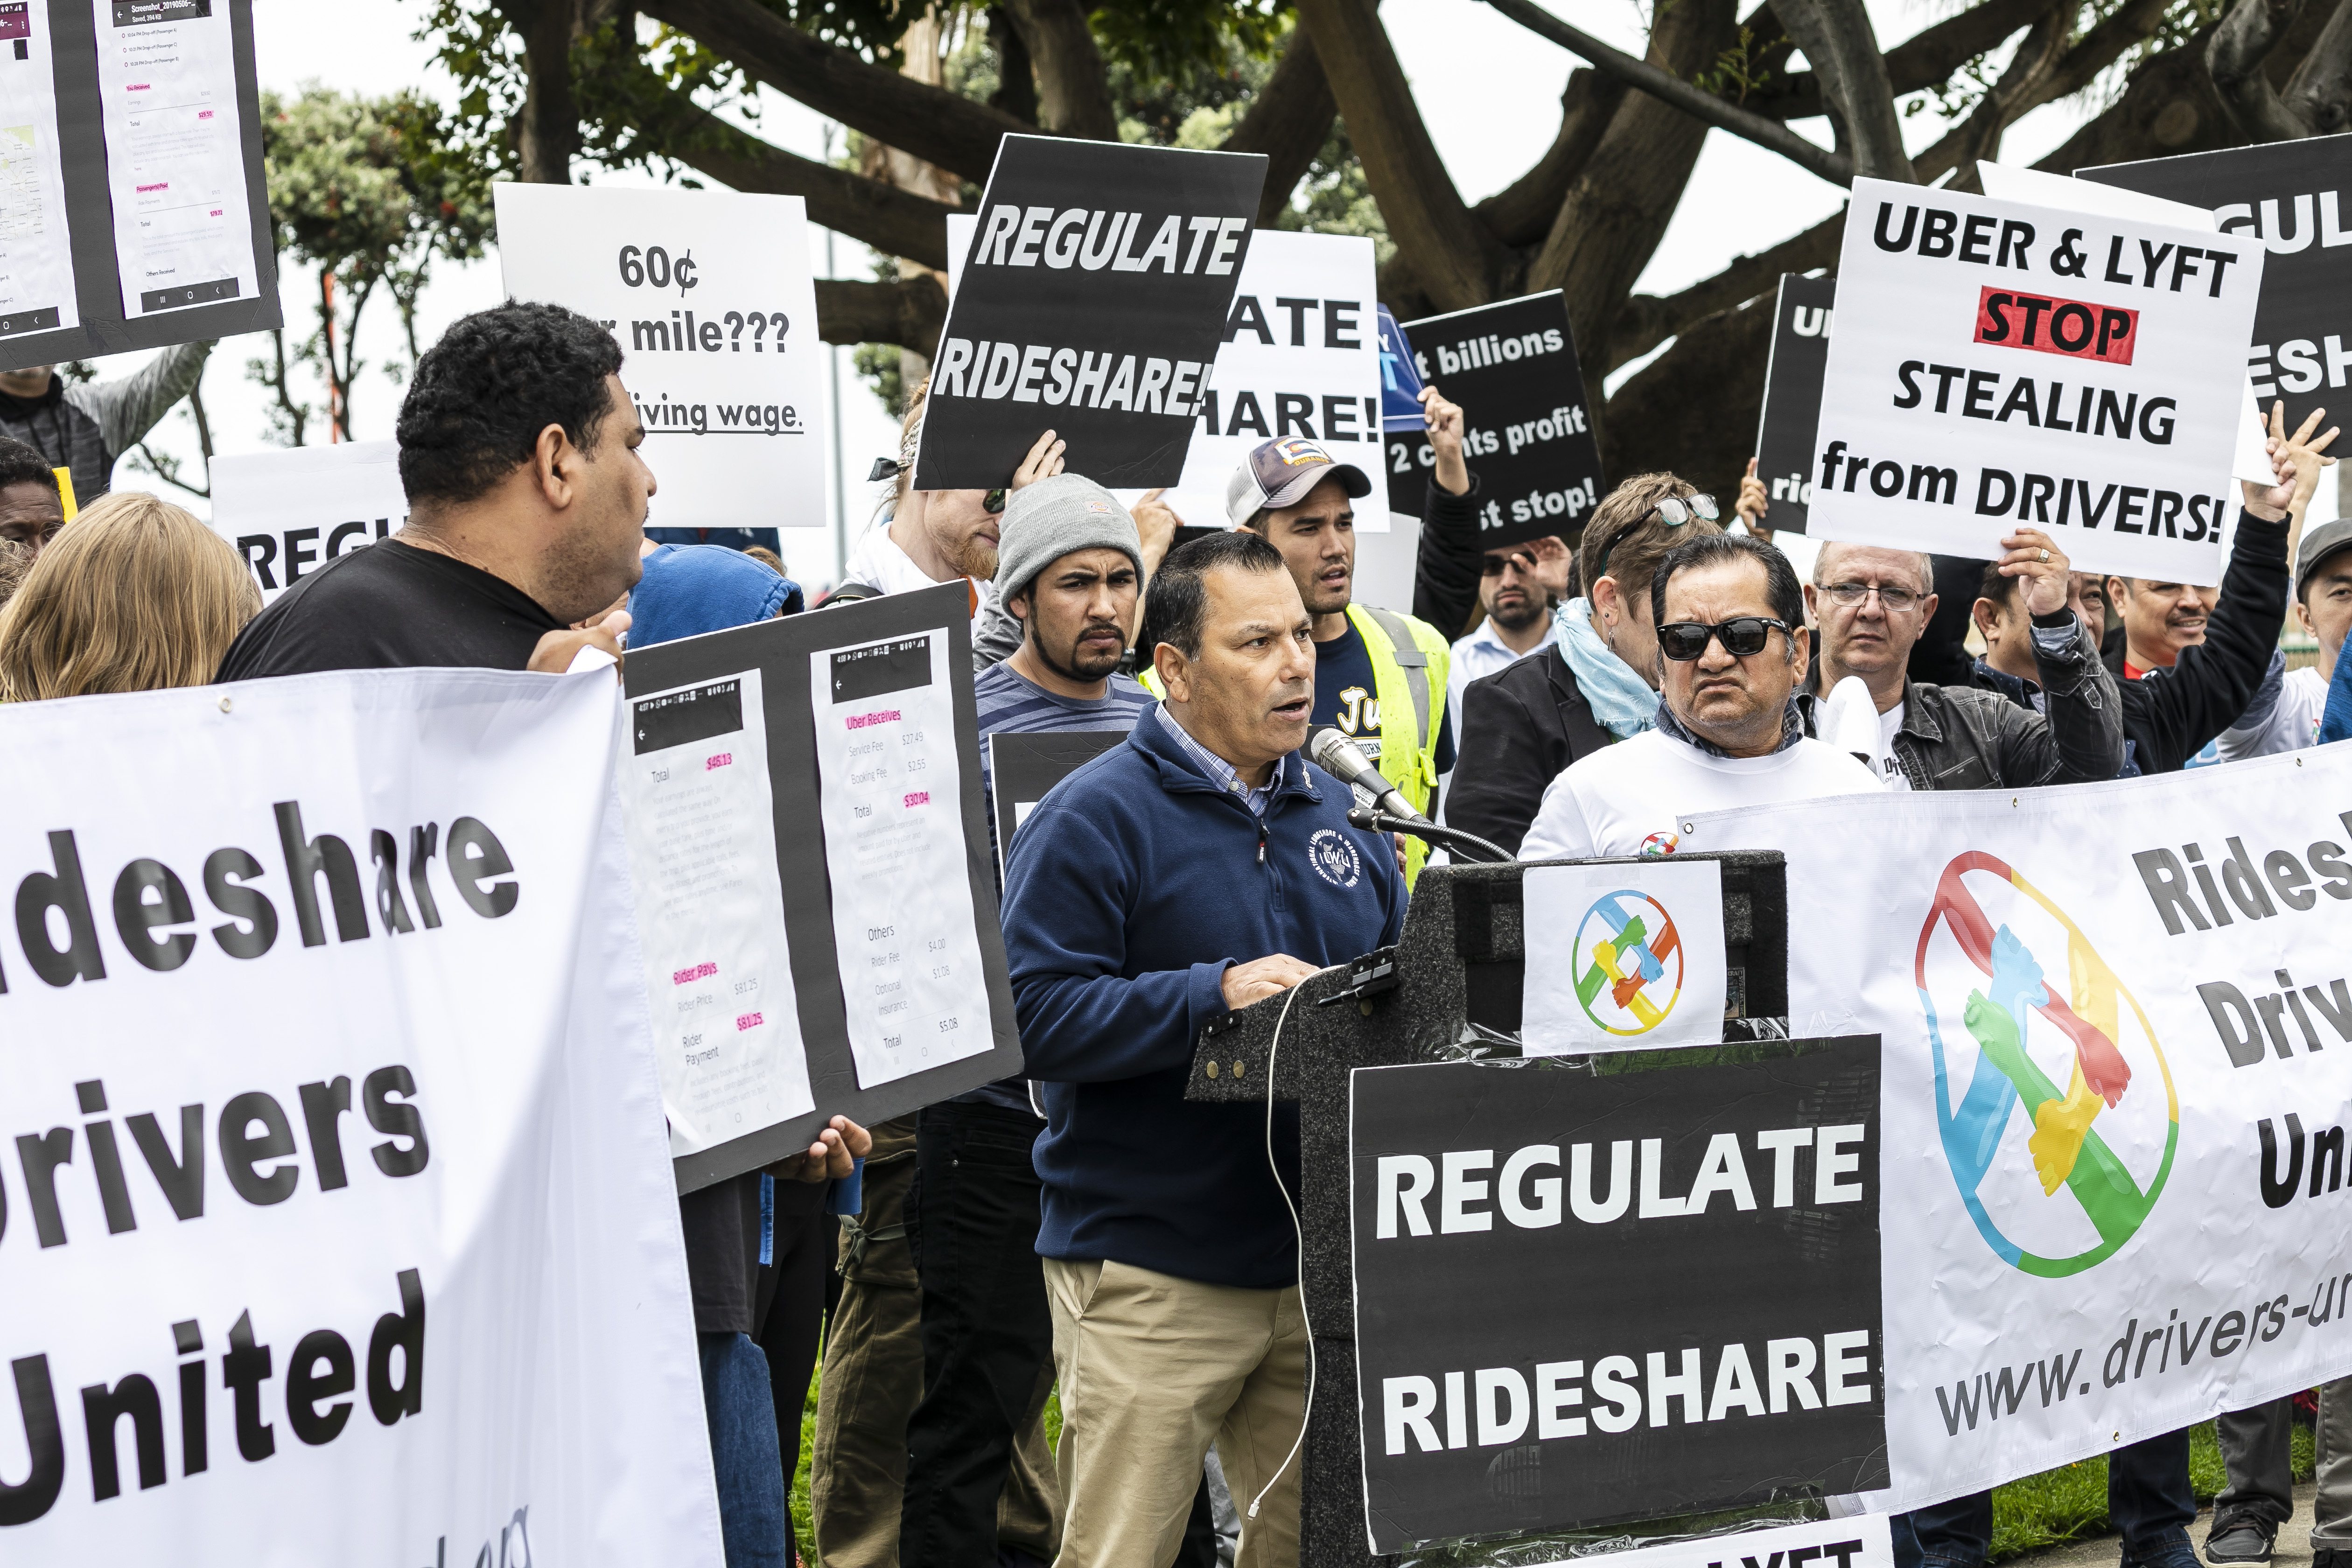 Ride share drivers from Uber and Lyft hold a one day nationwide strike for better and fairer wage splits from the ride share companies. Drivers held a rally and demonstrated near the LAX International Airport in Los Angeles, CA on May 8, 2019. (Photo by Ted Soqui/Sipa USA)(Sipa via AP Images)